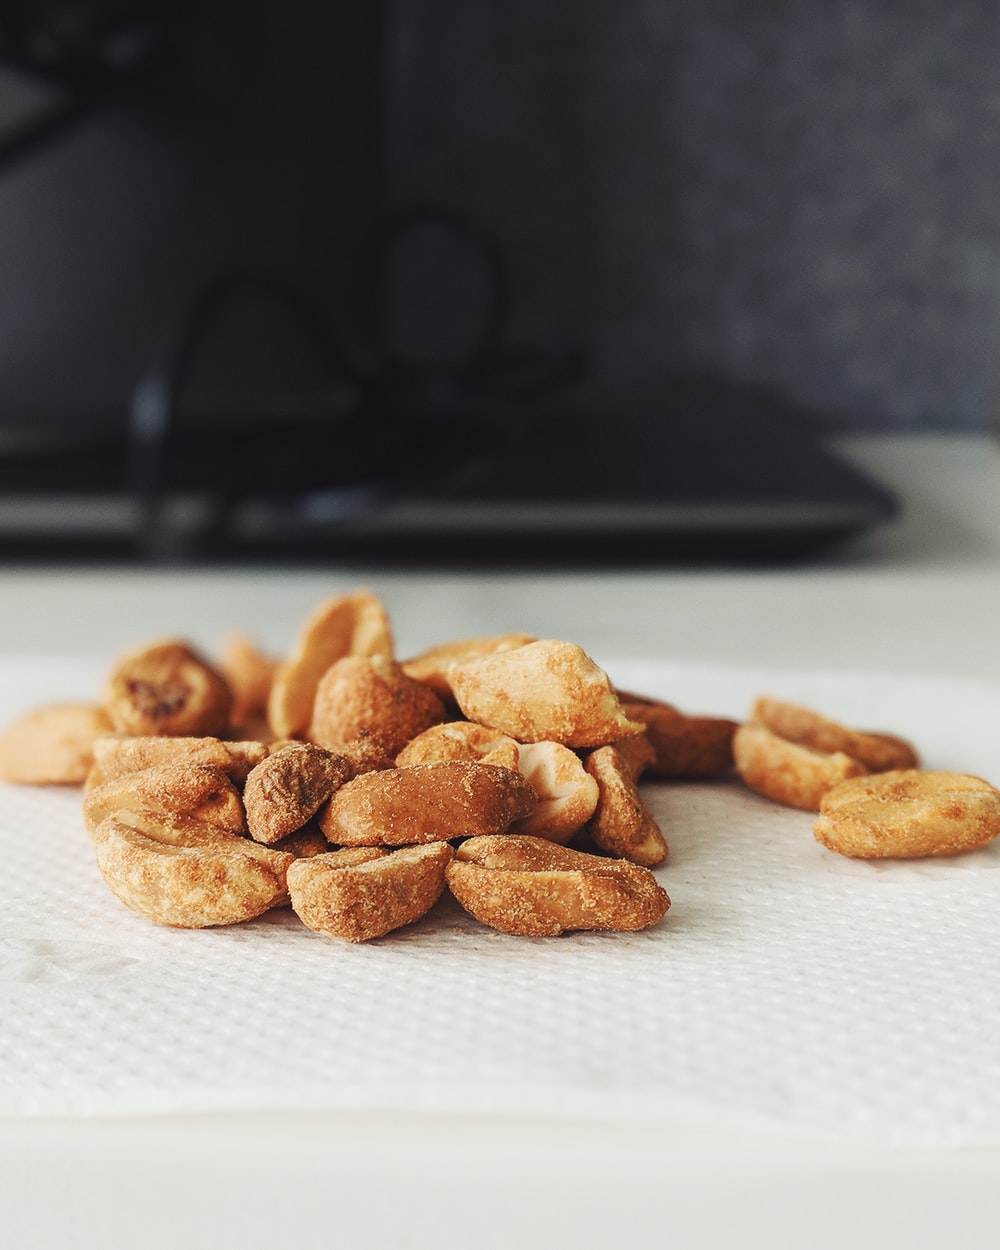 shallow focus of nuts